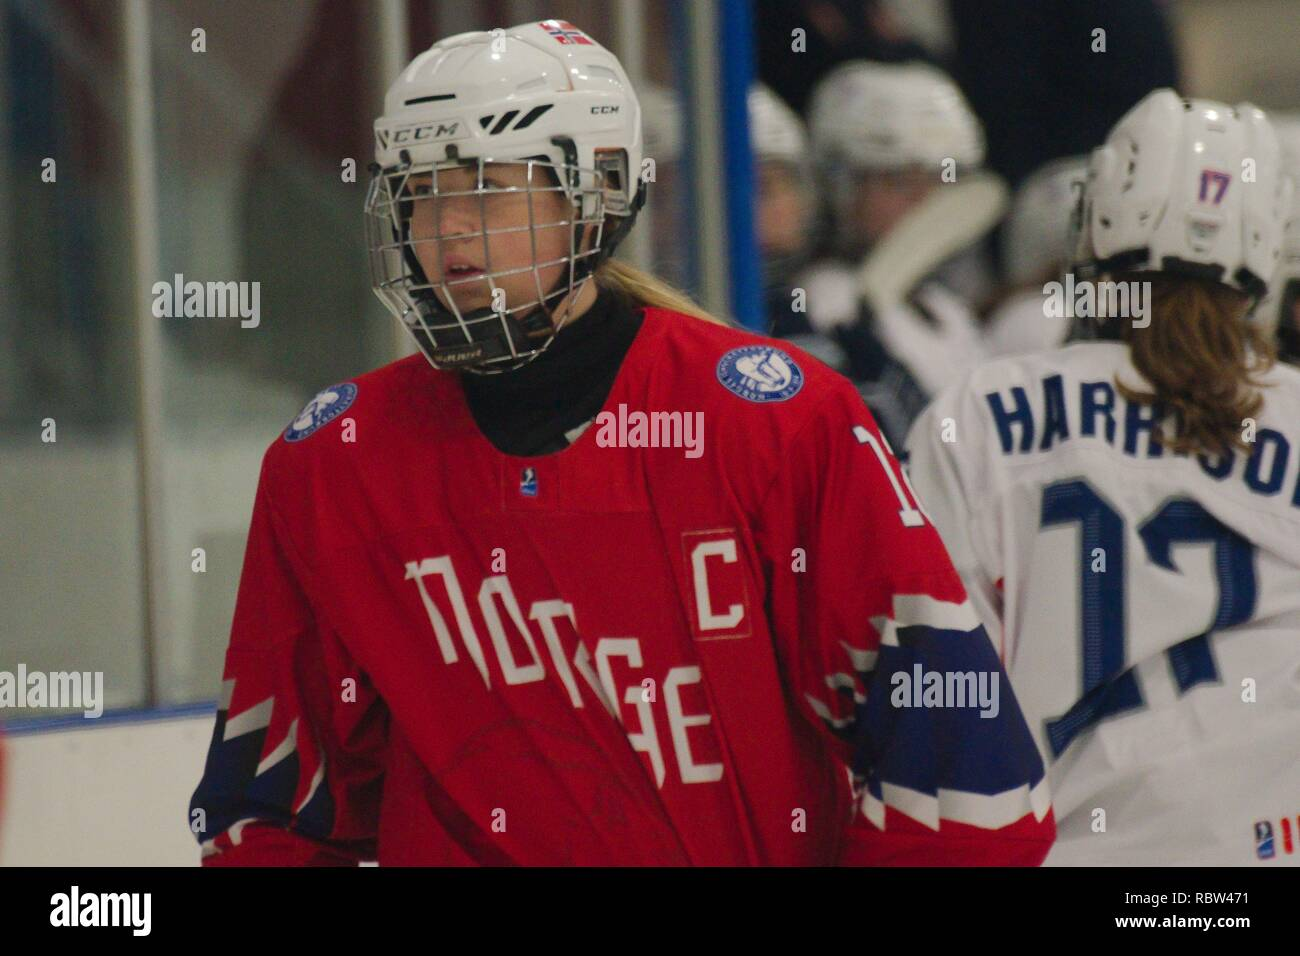 Dumfries, Scotland, 12 January 2019. Thea Jorgensen, captain of Norway, playing against France in the 2019 Ice Hockey U18 Women's World Championship, Division 1, Group B, at Dumfries Ice Bowl. Credit: Colin Edwards/Alamy Live News. - Stock Image